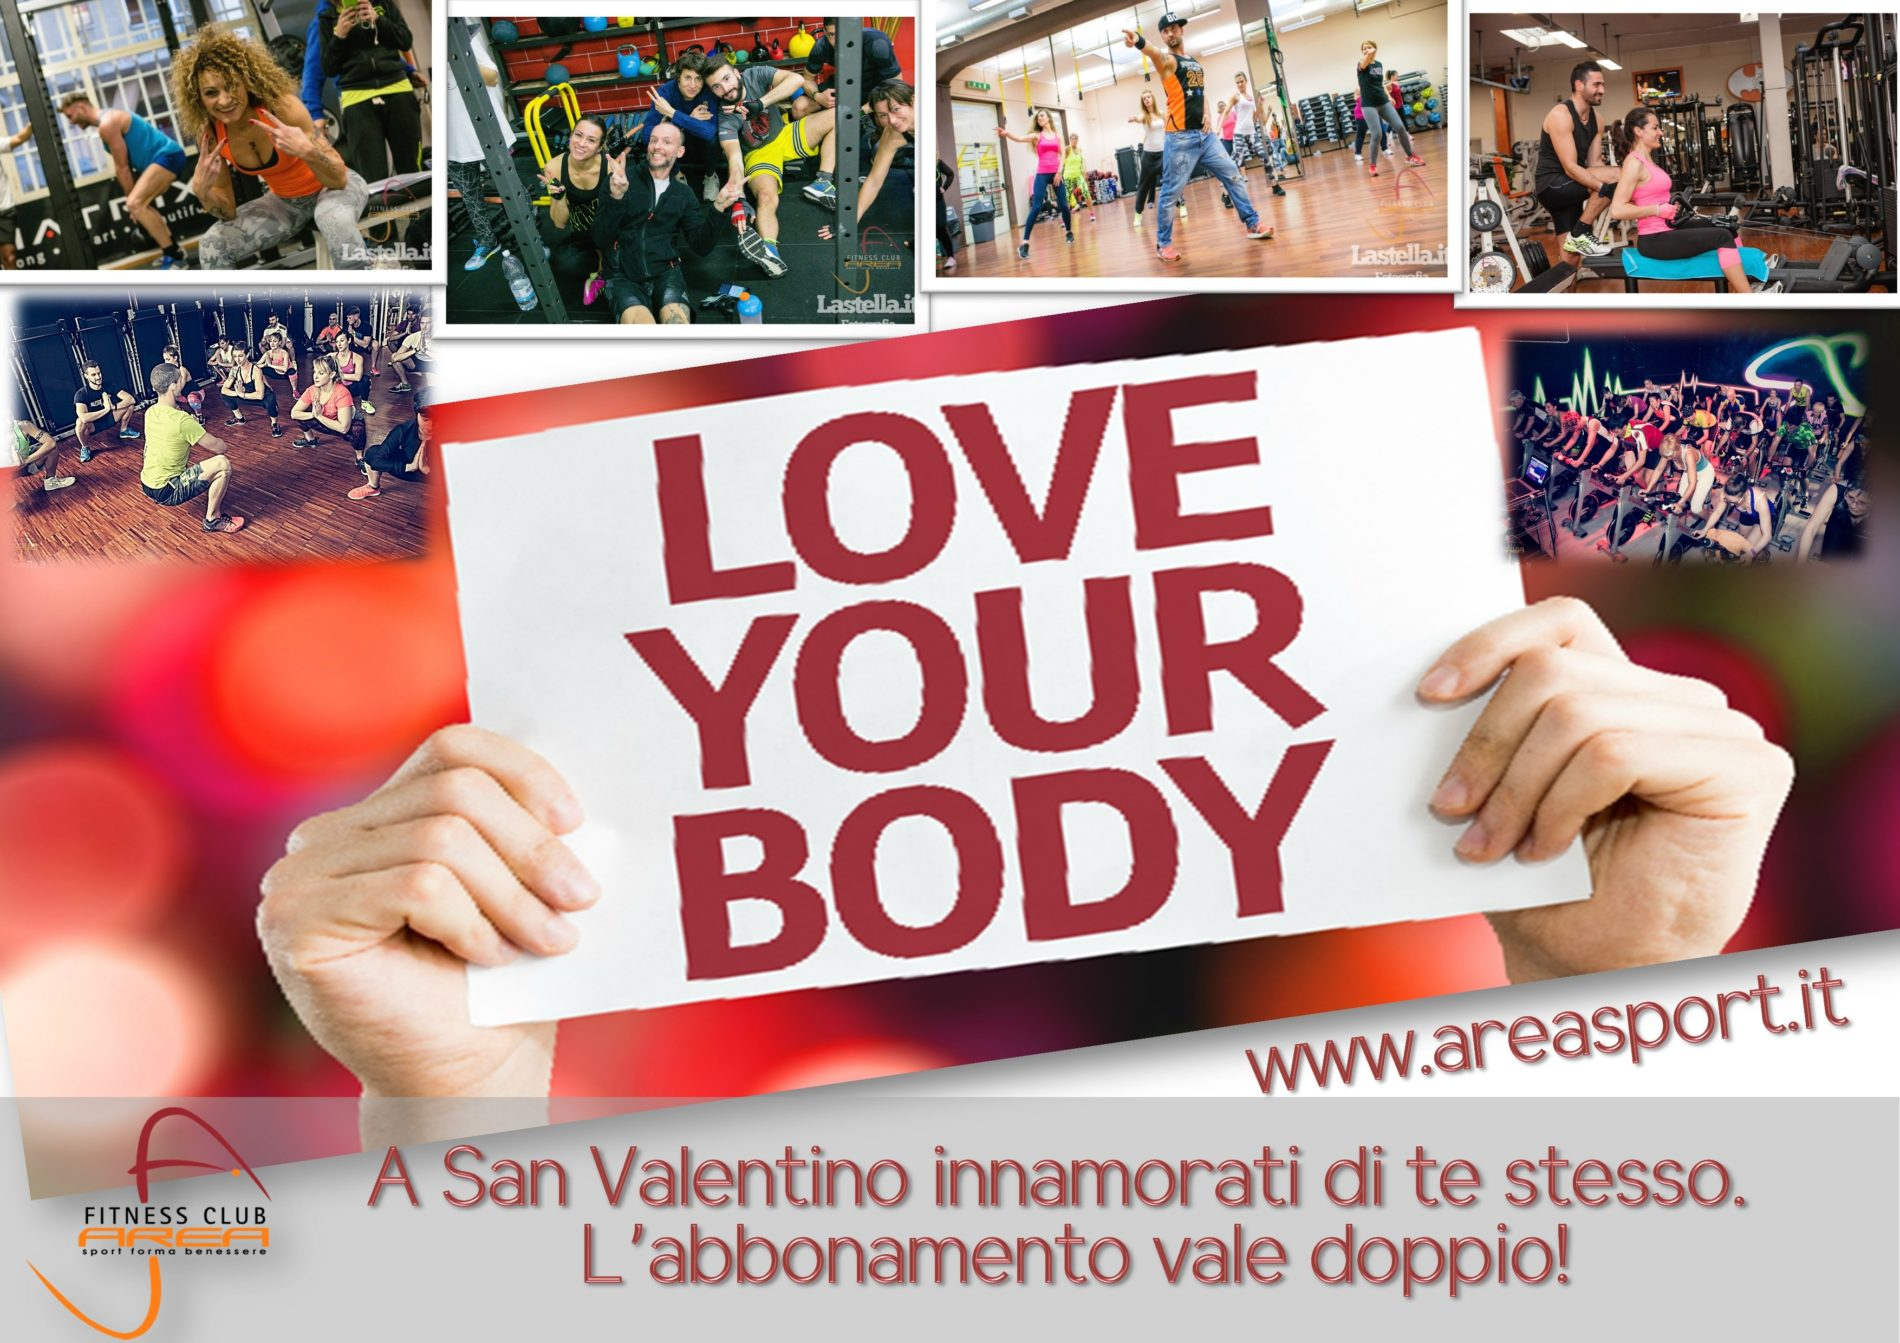 PROMO LOVE YOUR BODY